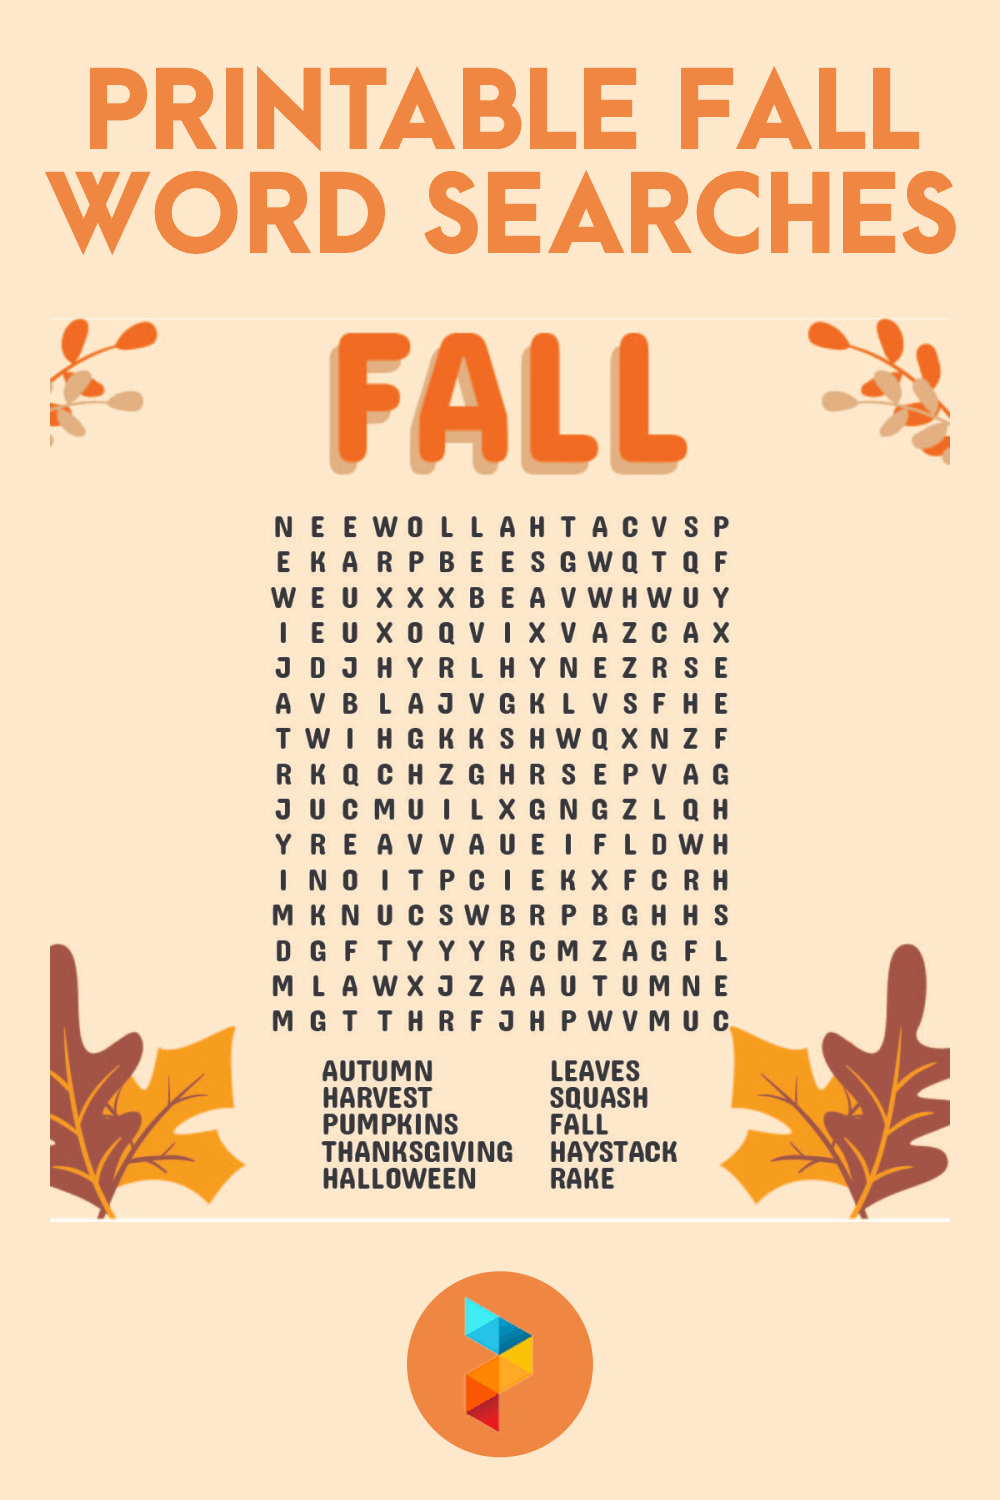 Fall Word Search Printable Light png